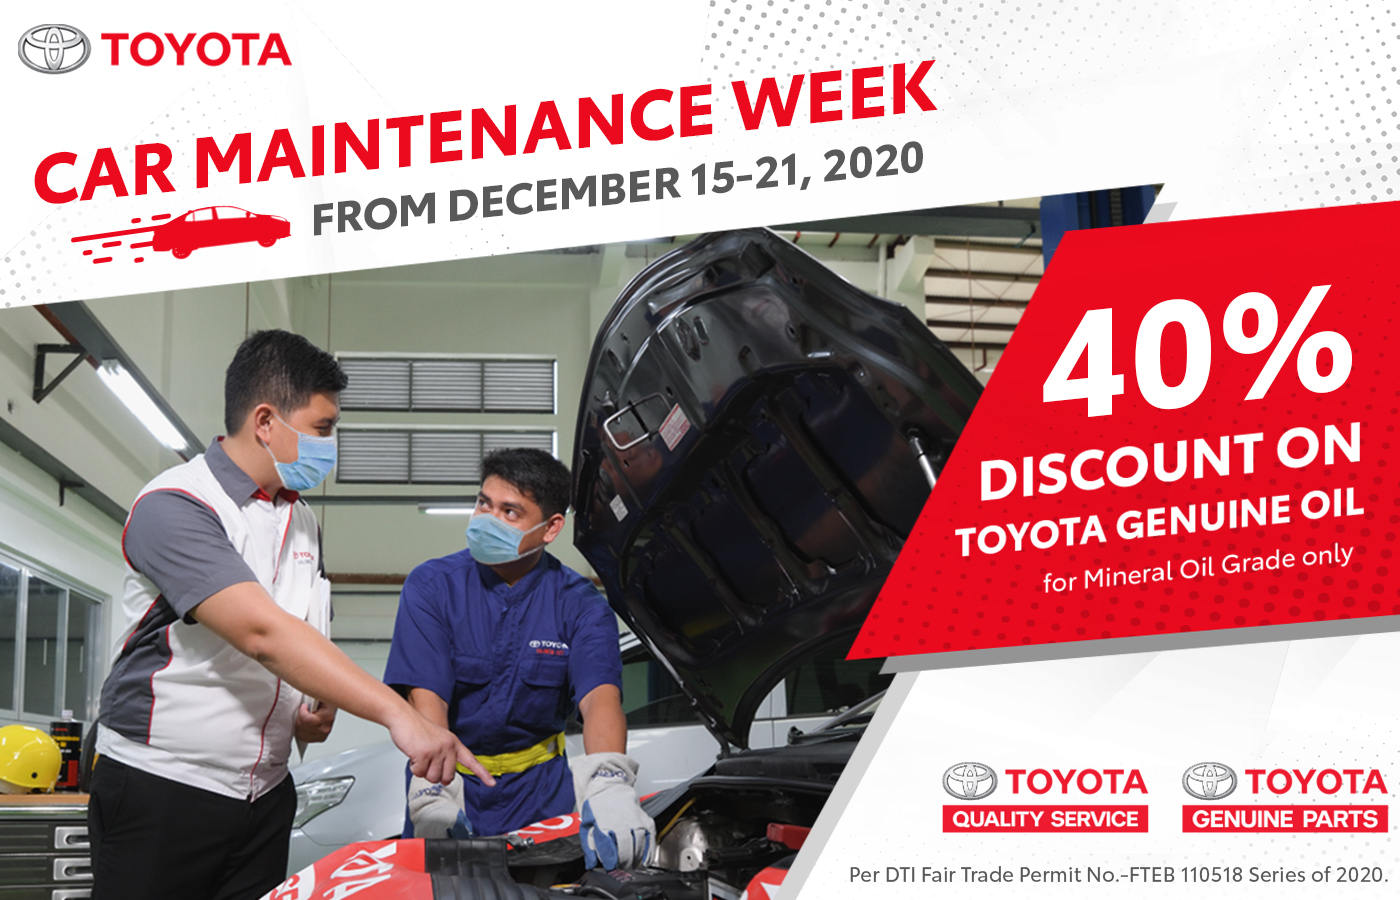 Toyota announces Car Maintenance Week and more service offers this December